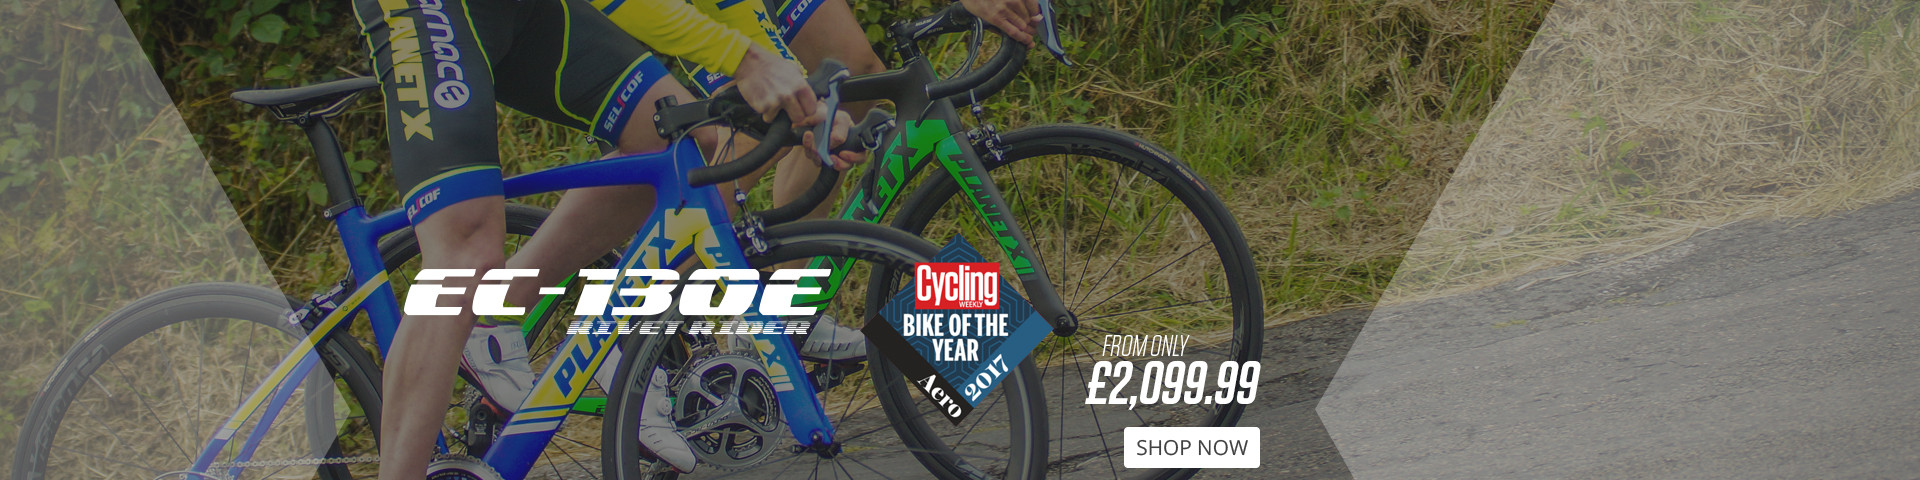 Best Aero Bike of The Year